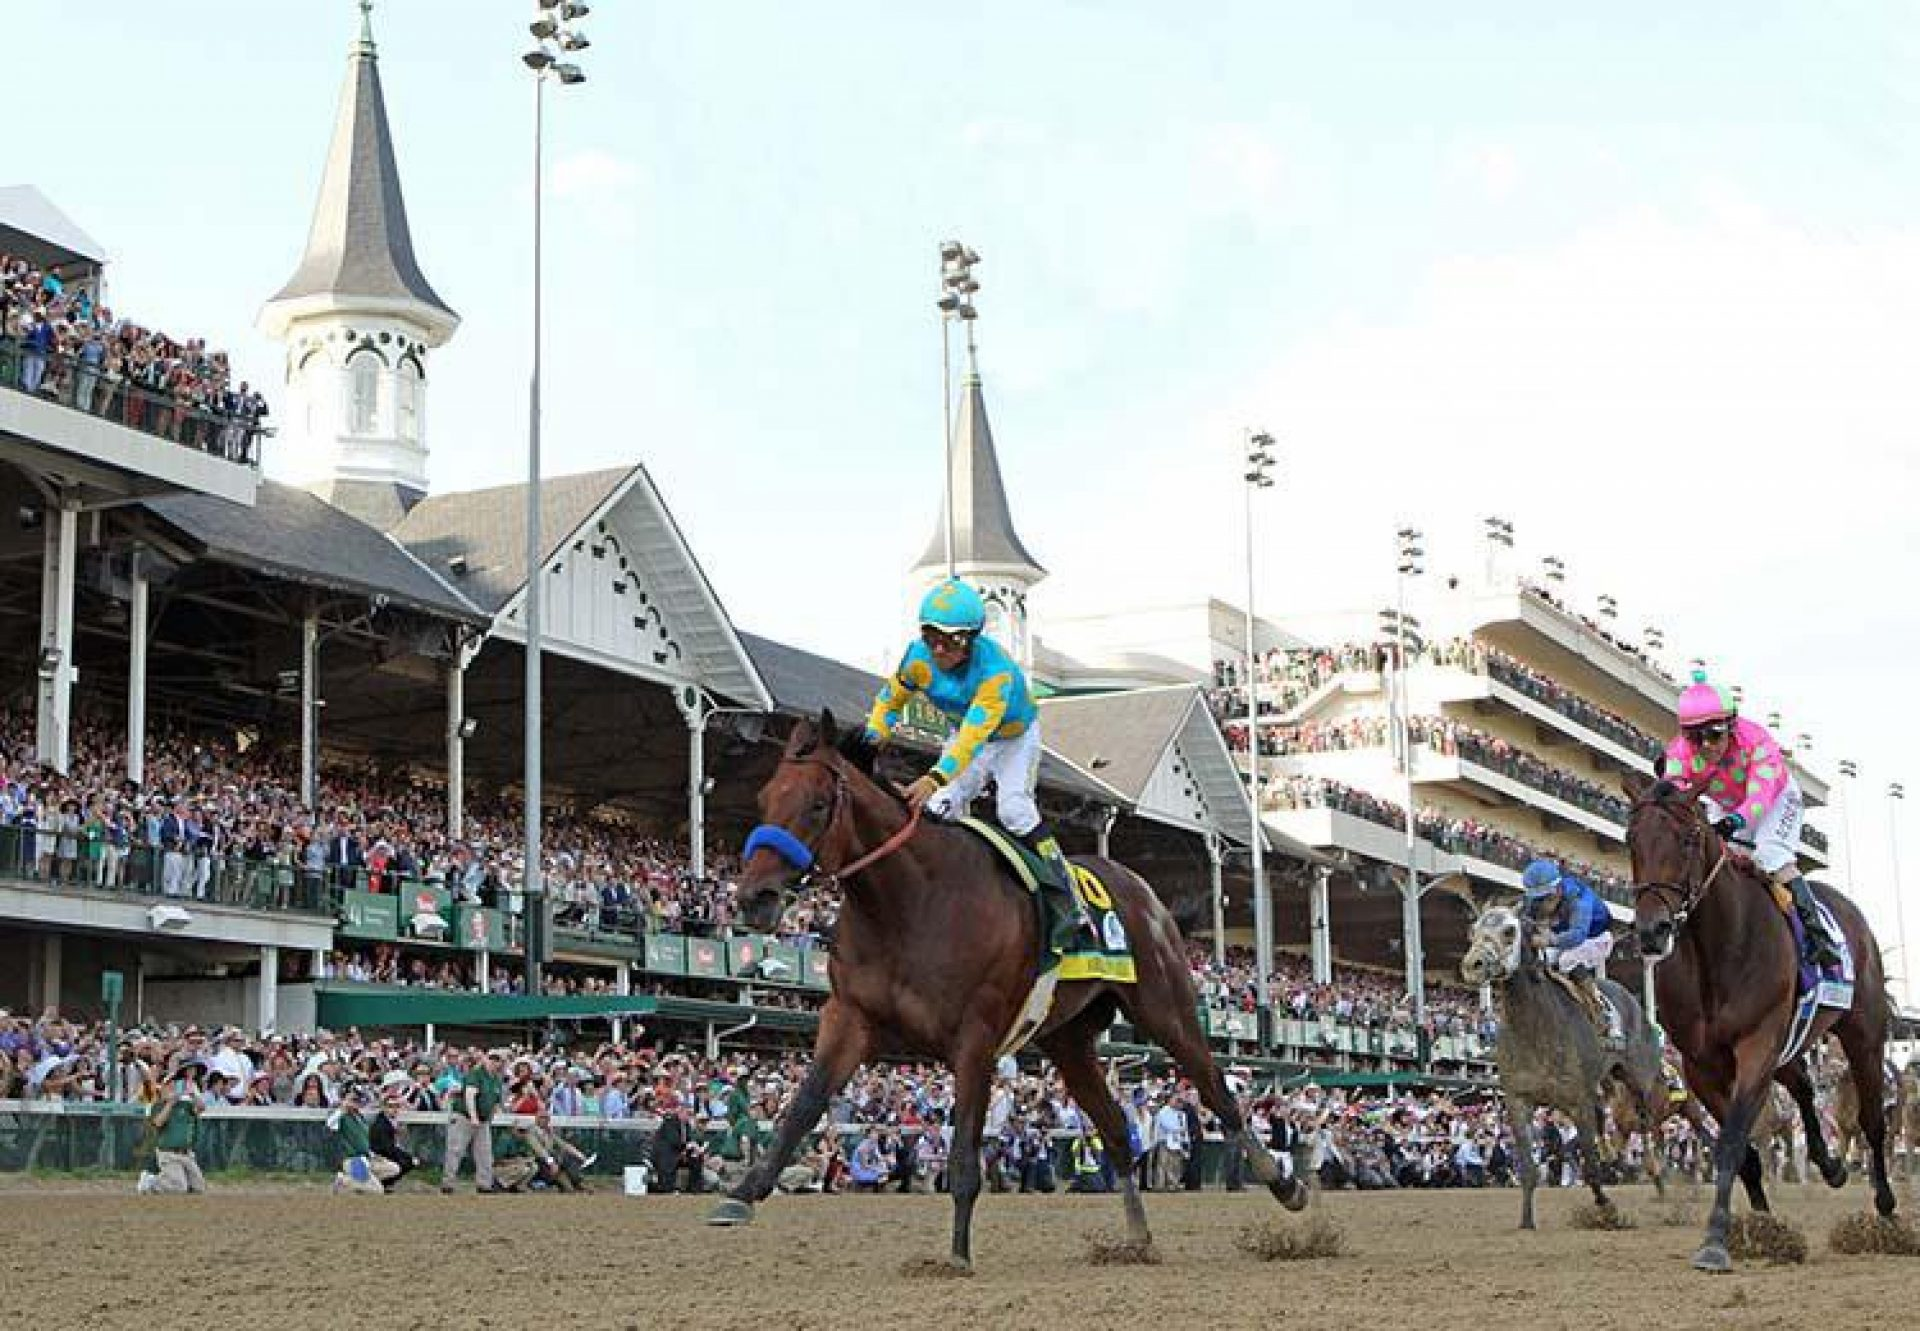 American Pharoah winning the Kentucky Derby